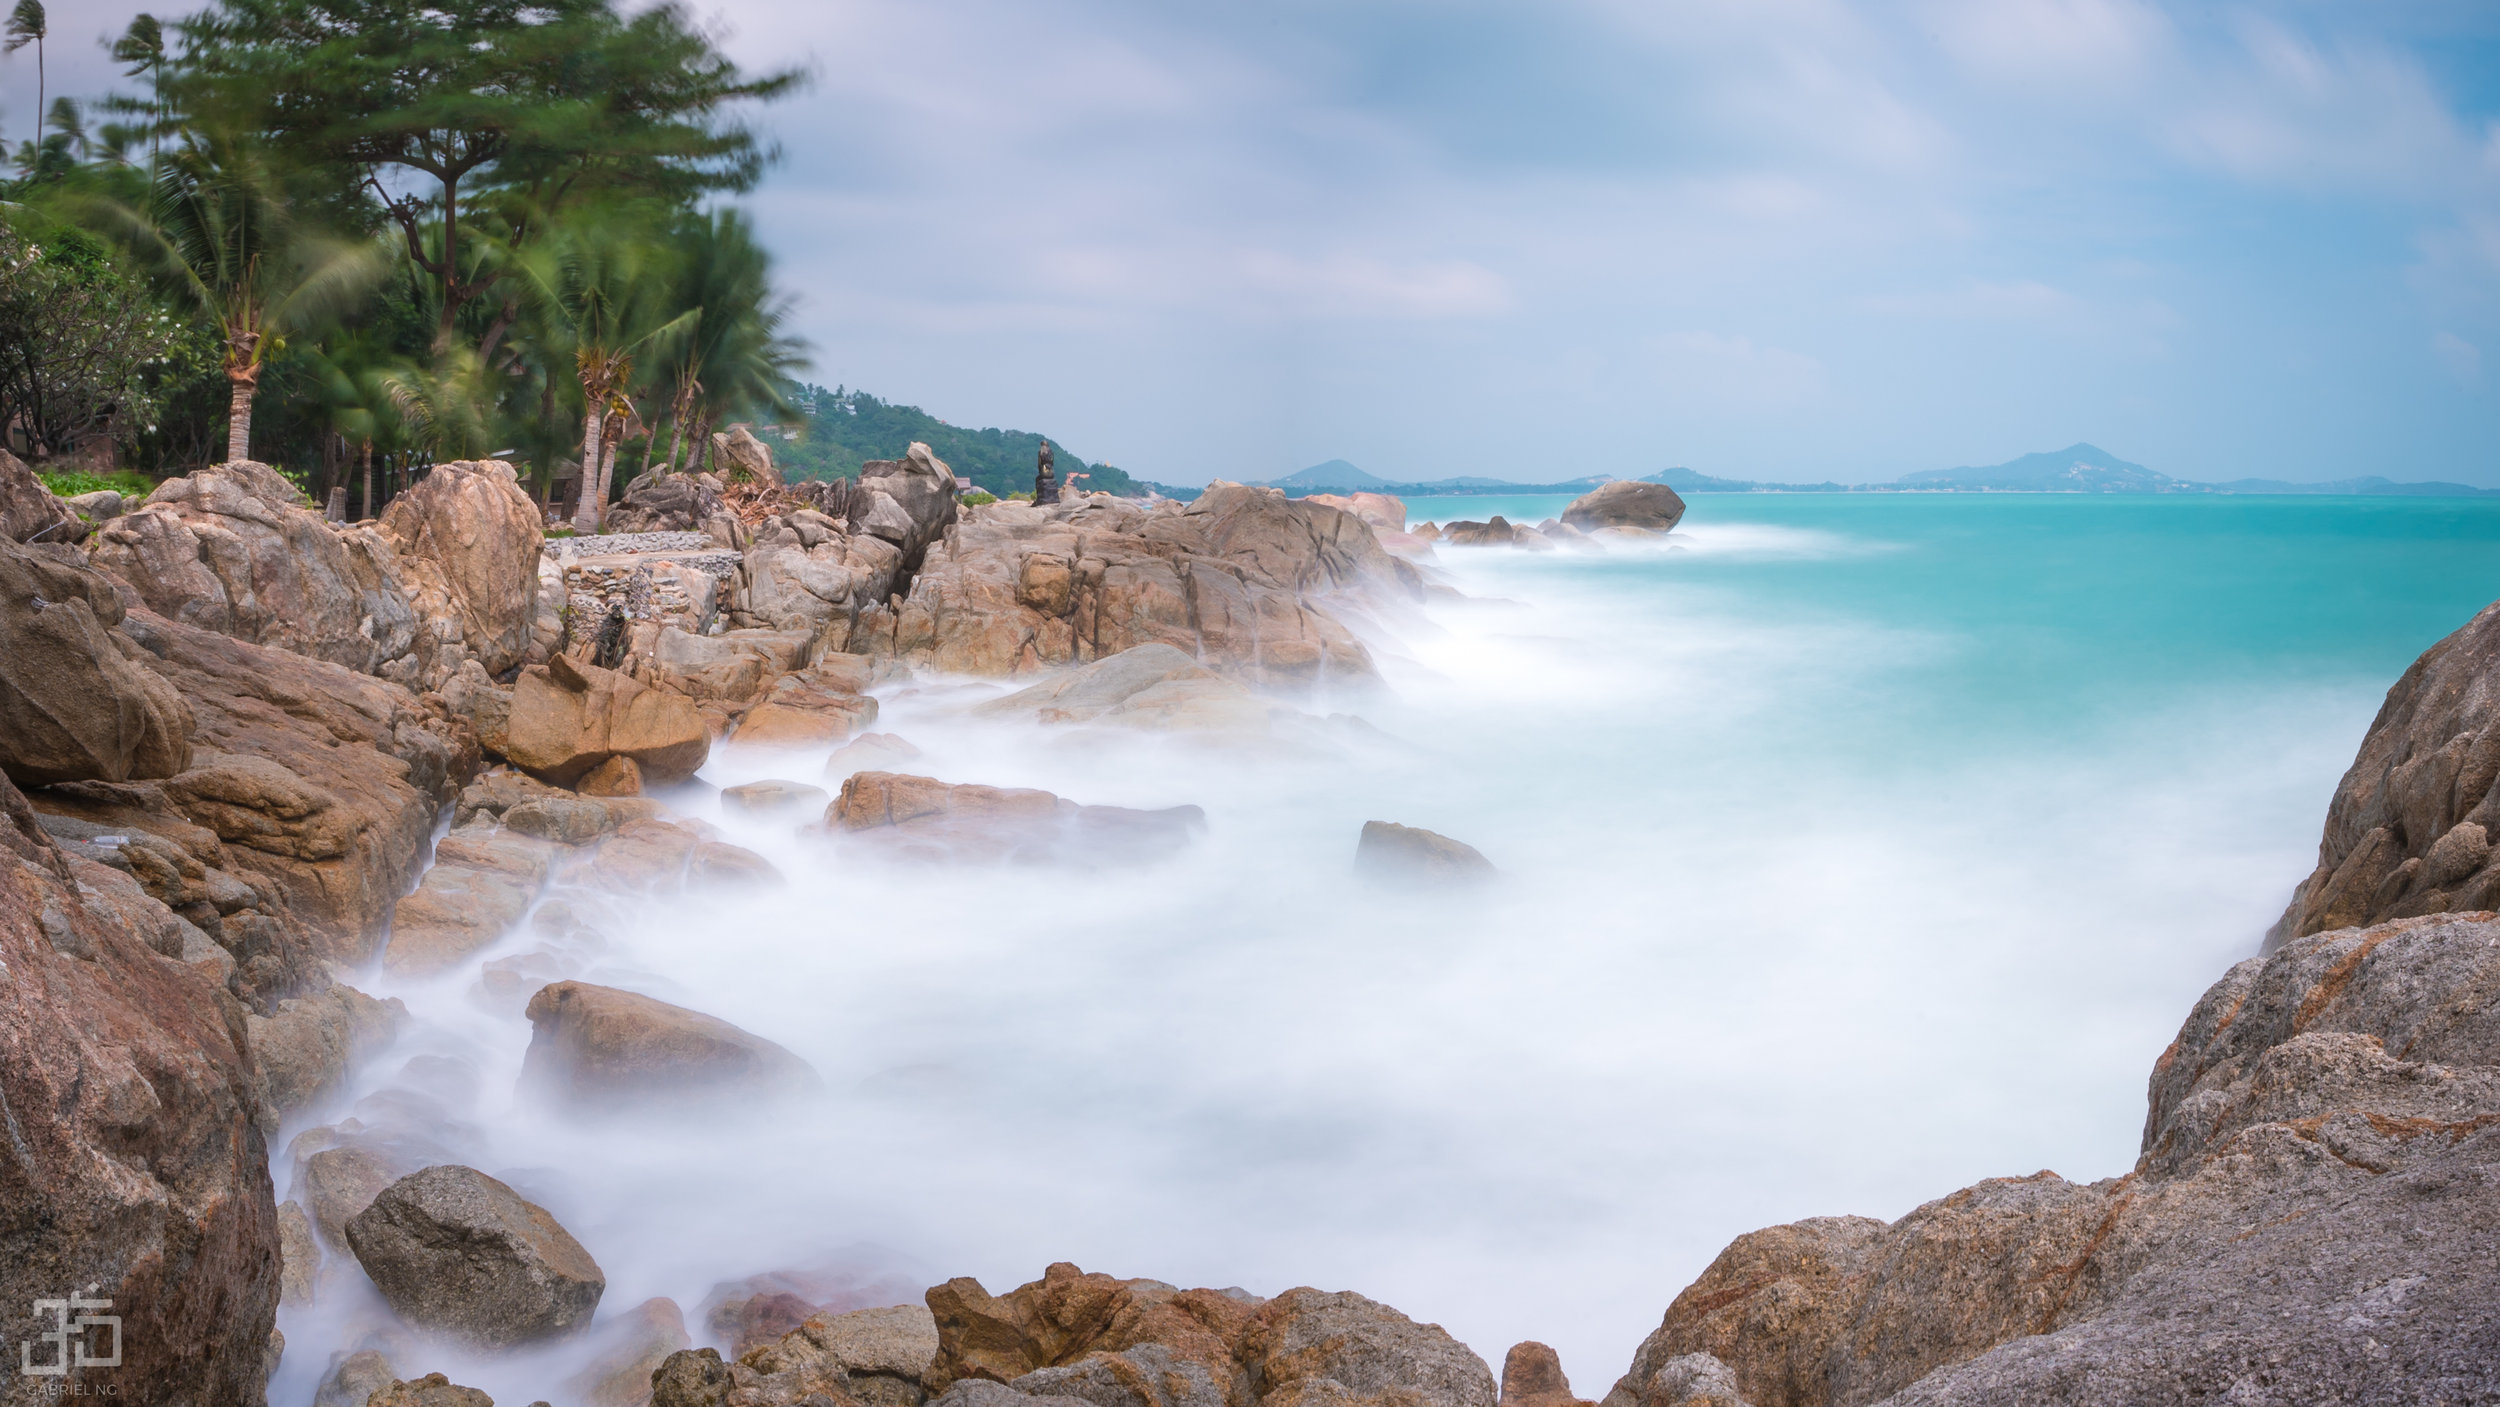 Monsoon Season, Koh Samui Thailand